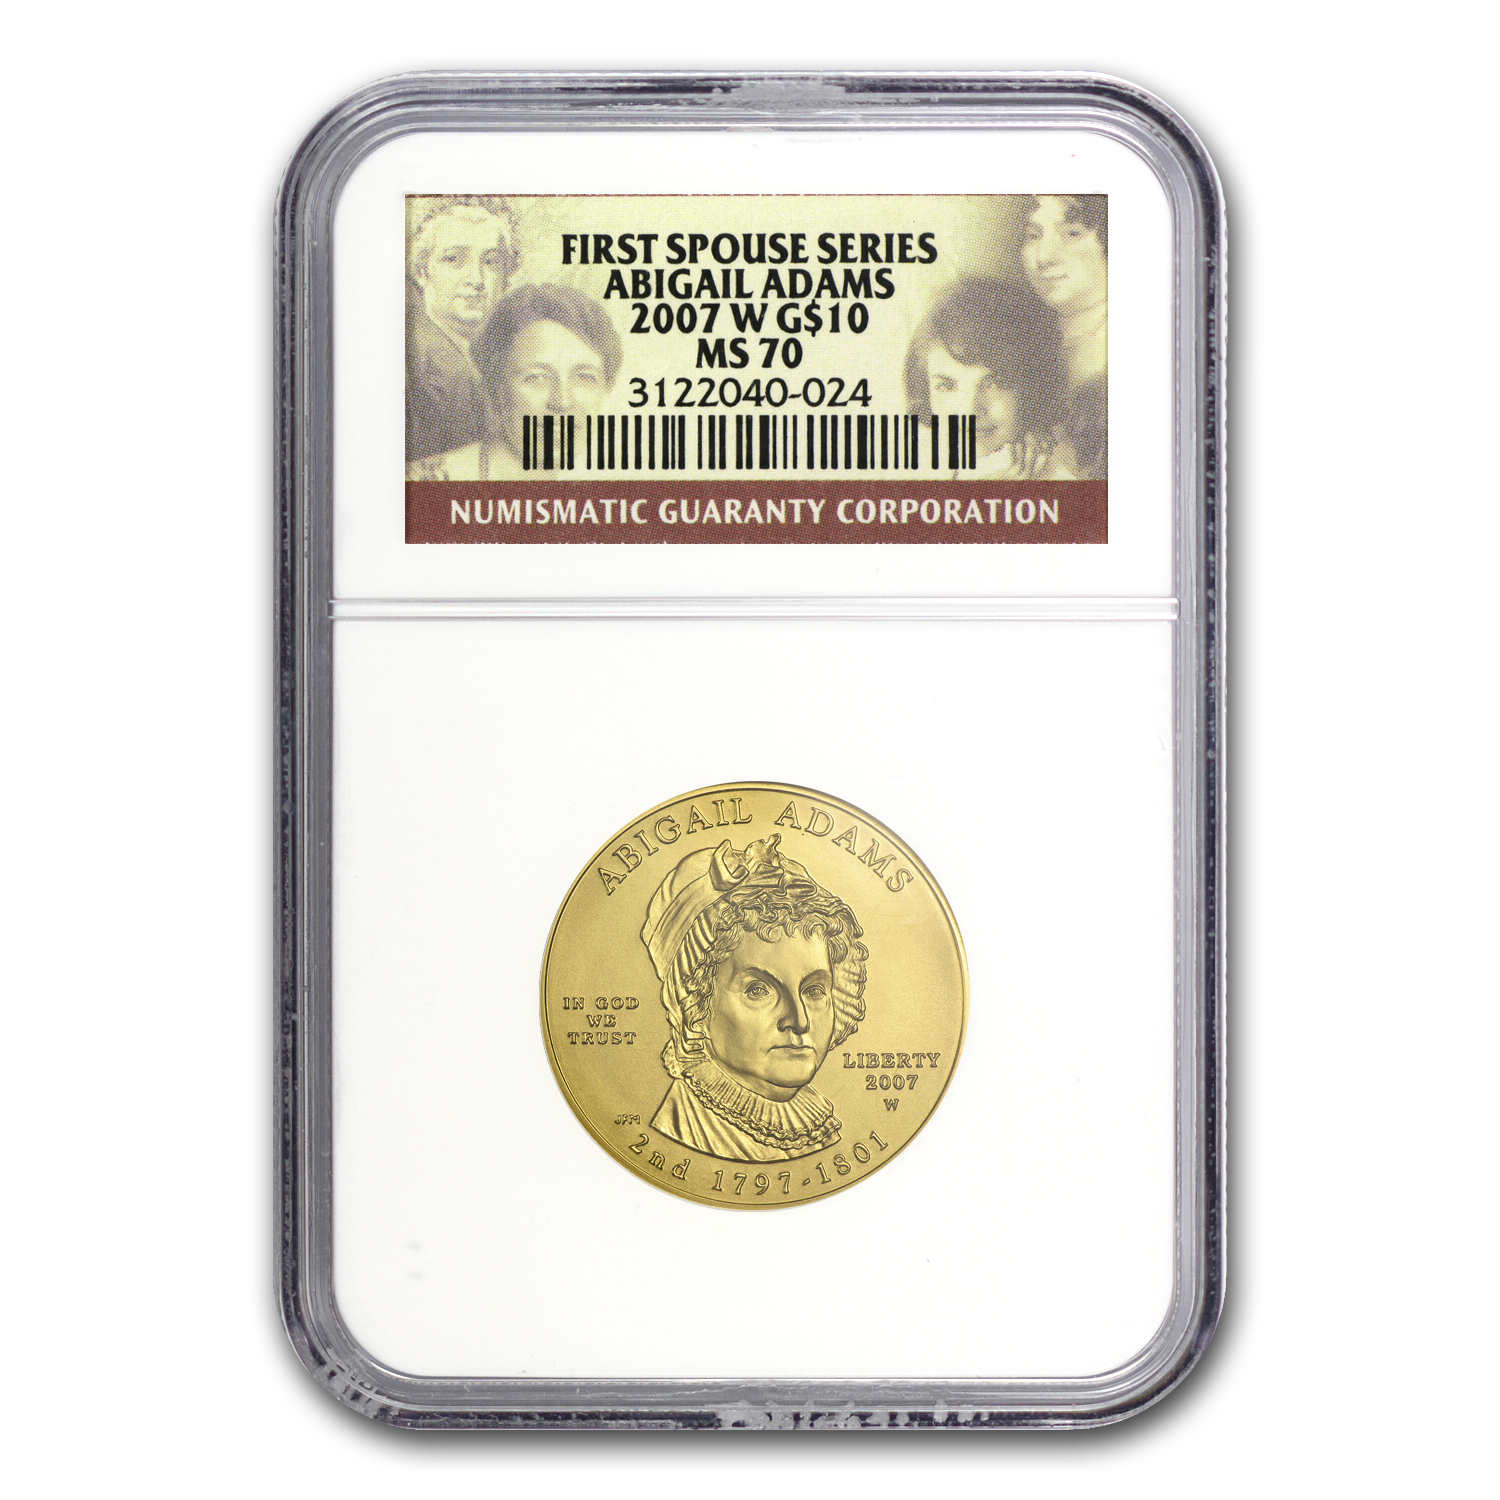 2007-W 1/2 oz Gold Abigail Adams MS-70 NGC